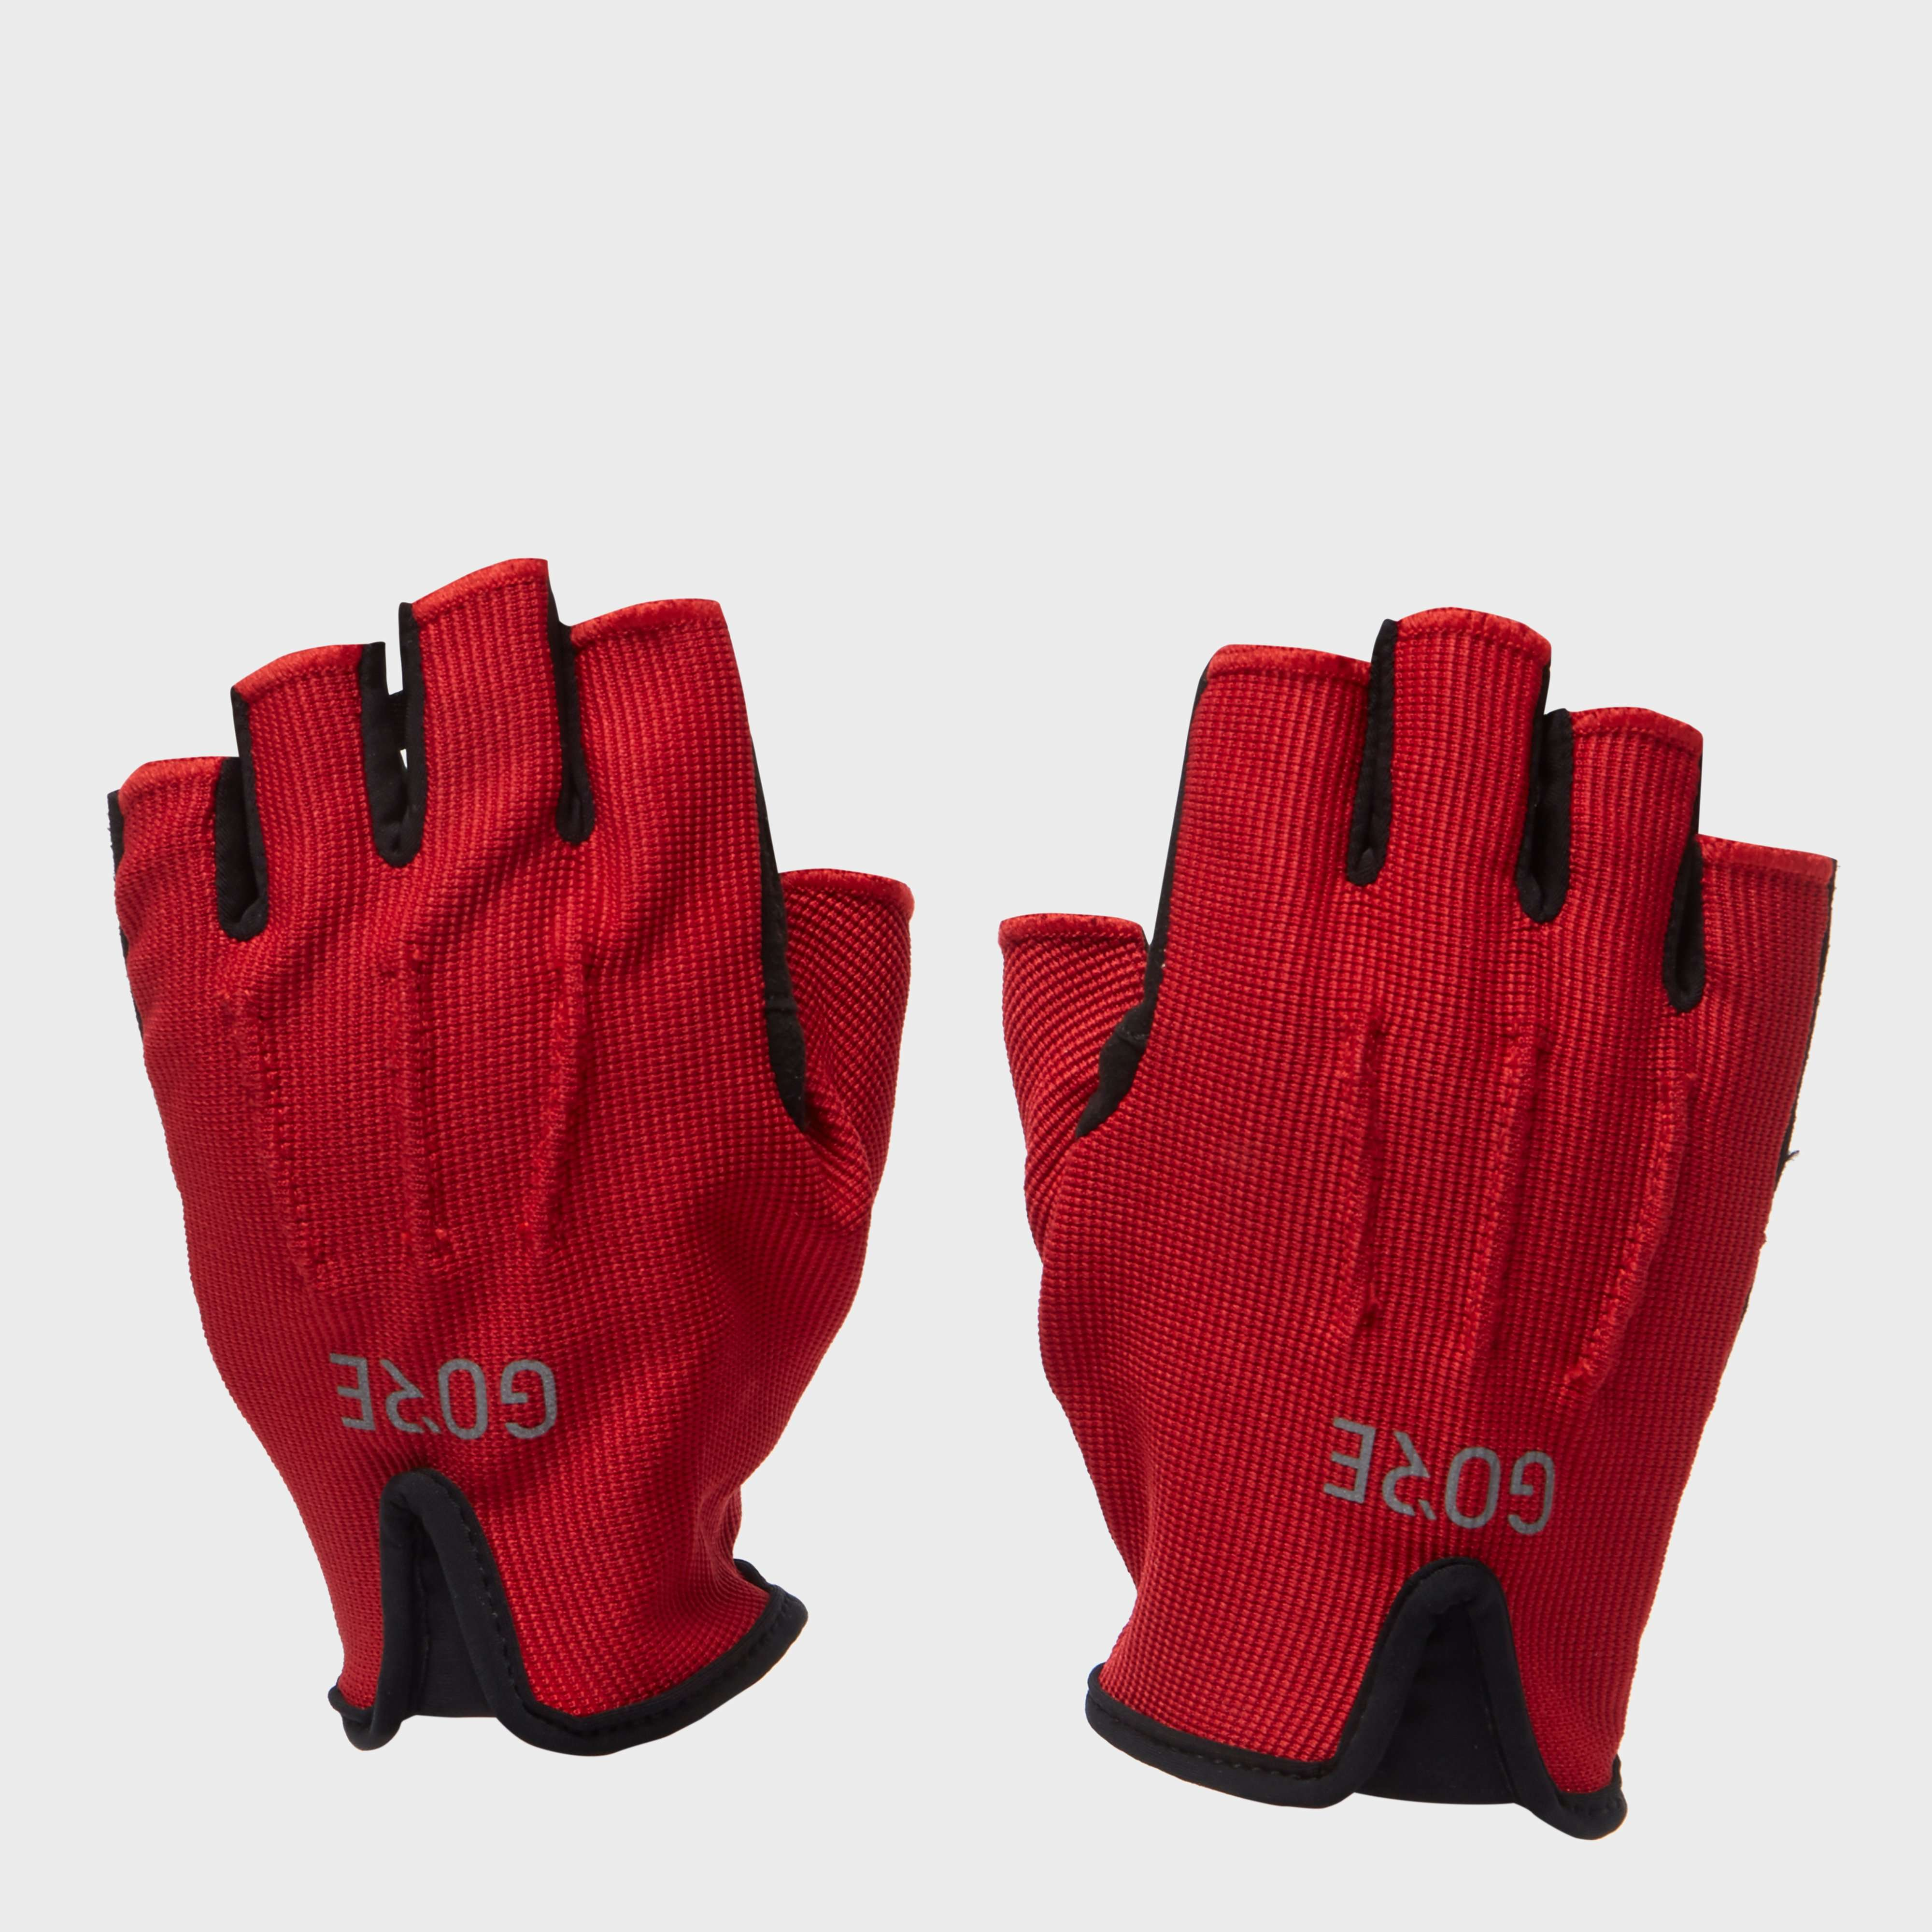 GORE Gore C3 Cycling Gloves